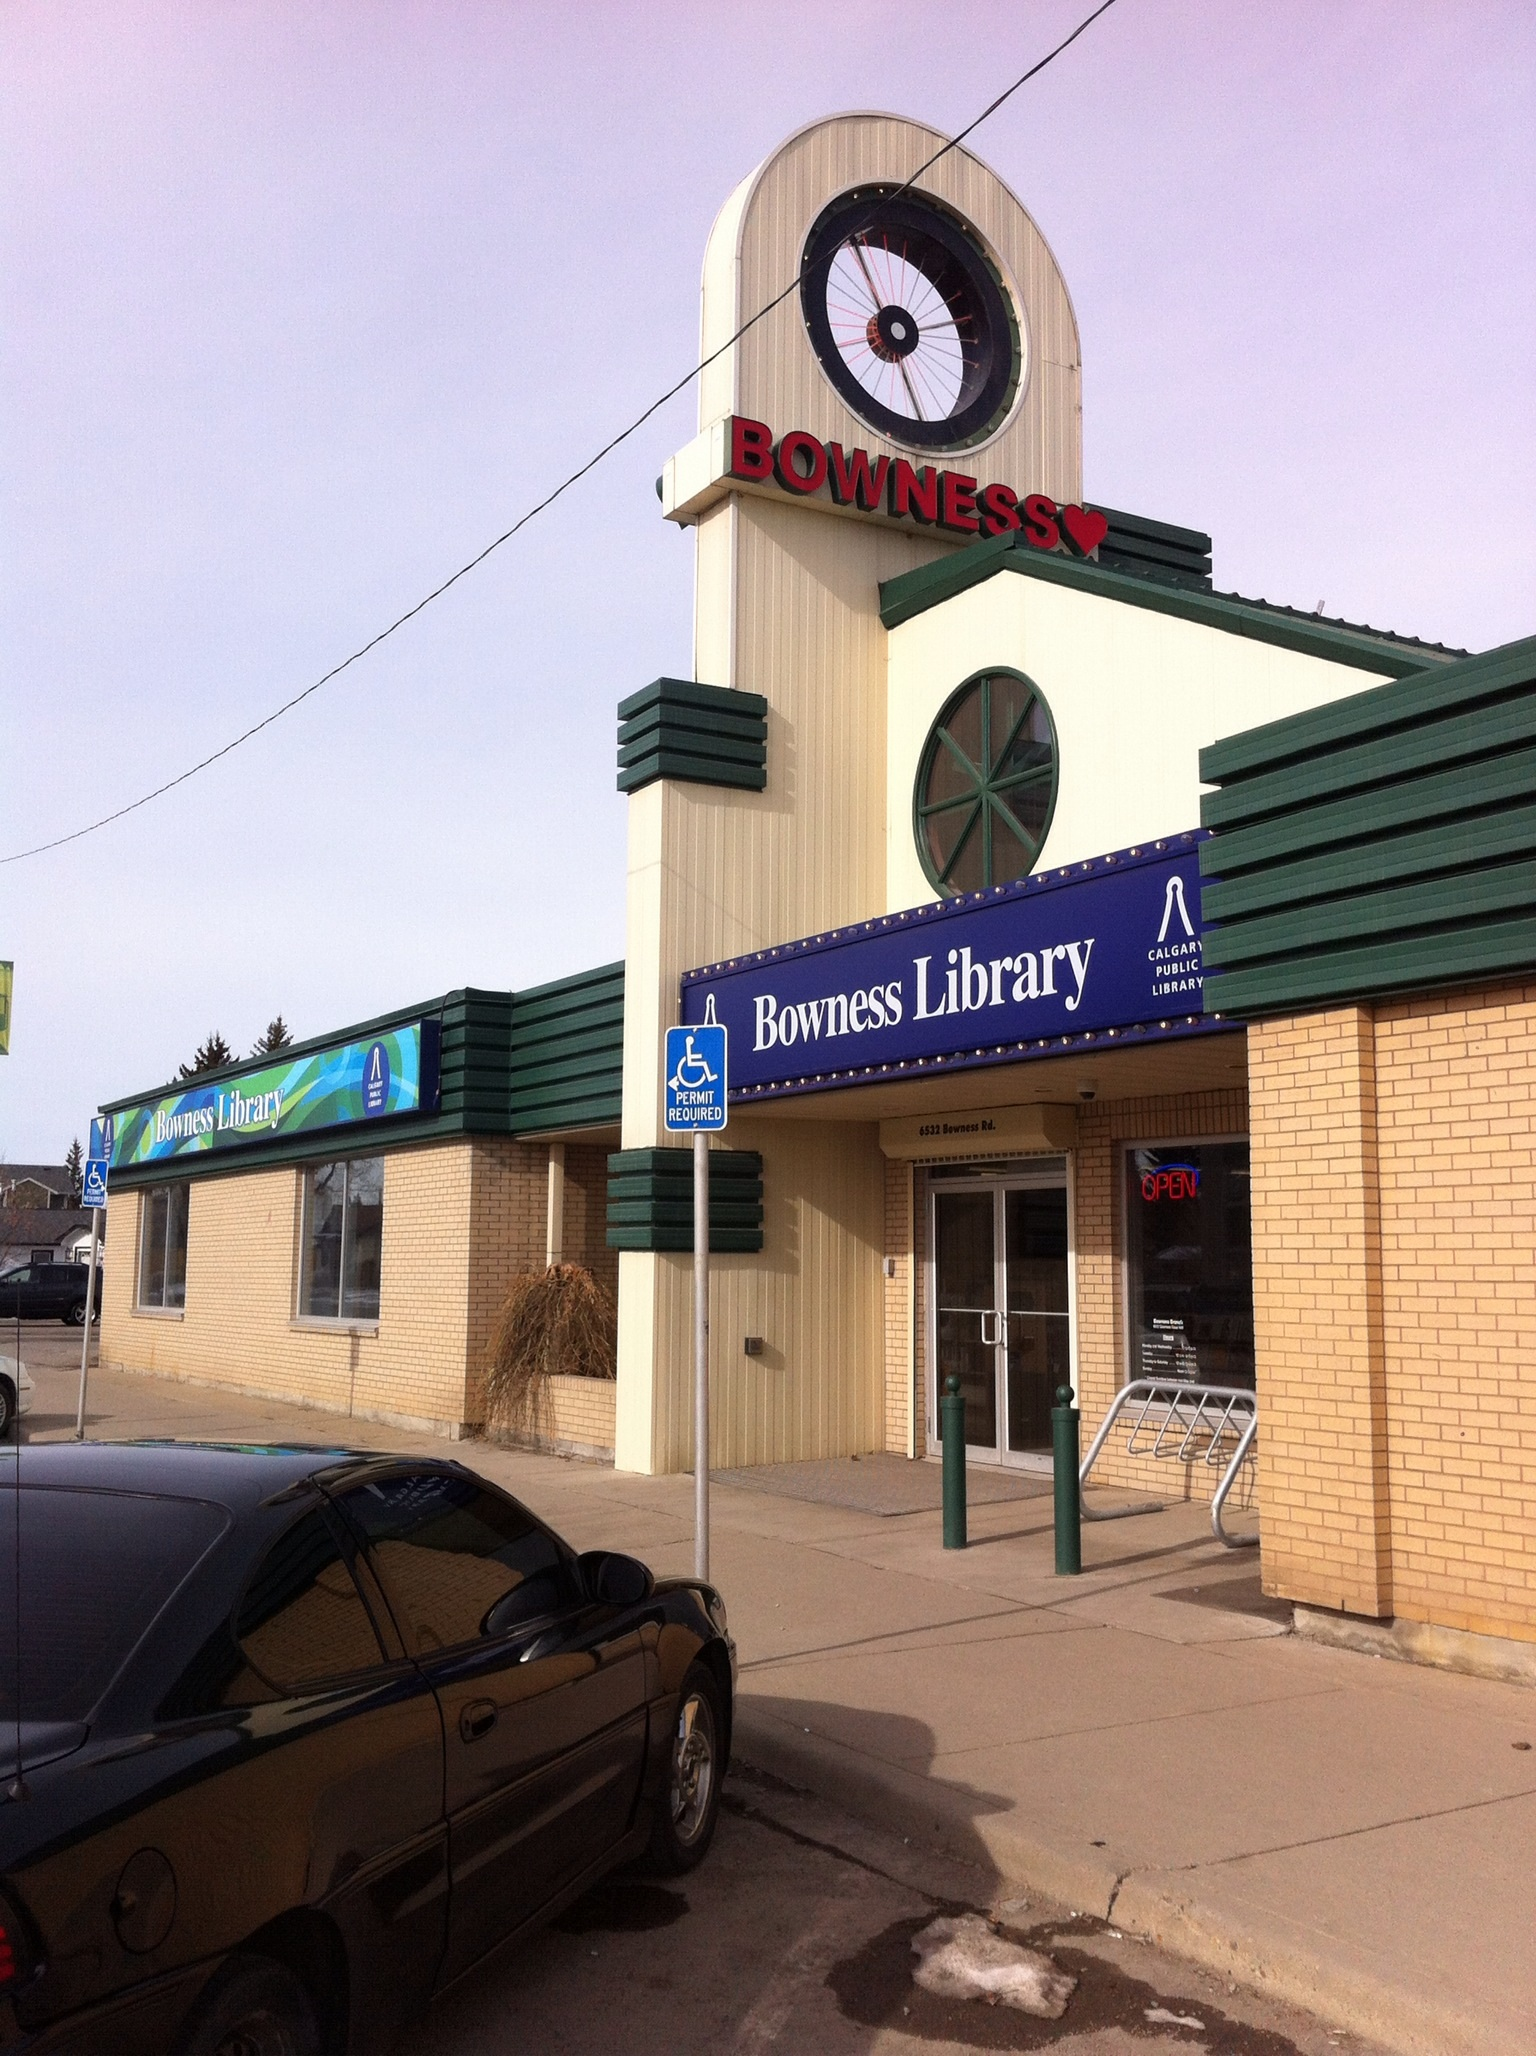 Bowness Library located in former motor cycle, ATV shop on Main Street.